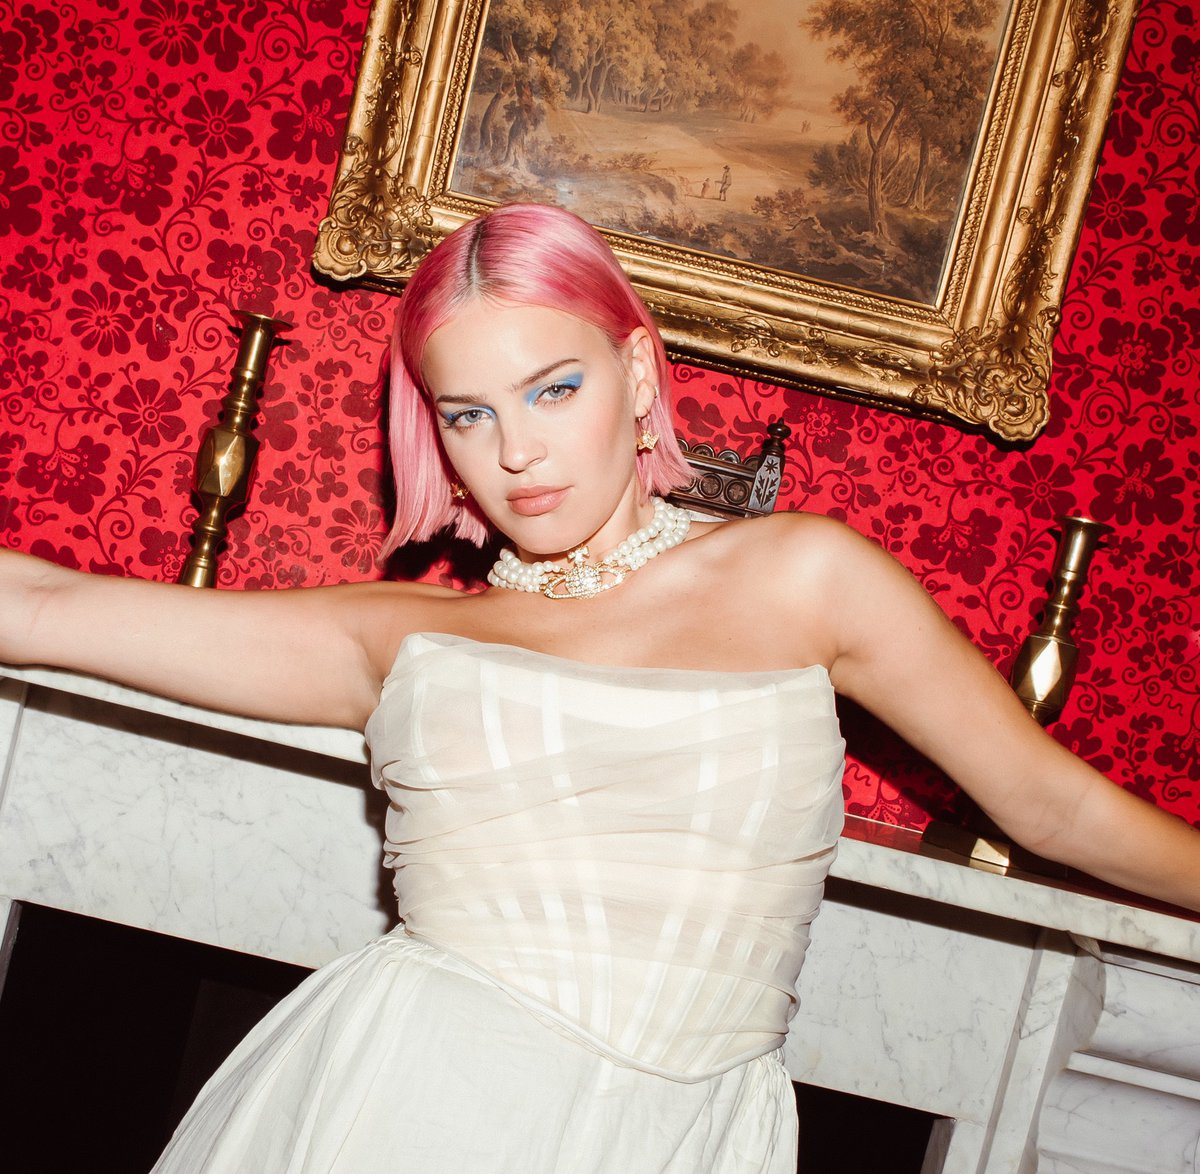 Anne Marie On Twitter Ahhhhh Got To Do A Little Surprise Show Last Night And It Was Magical Thank You To Everyone Who S Supported Me On This Mad Journey Birthday Out Tomorrow